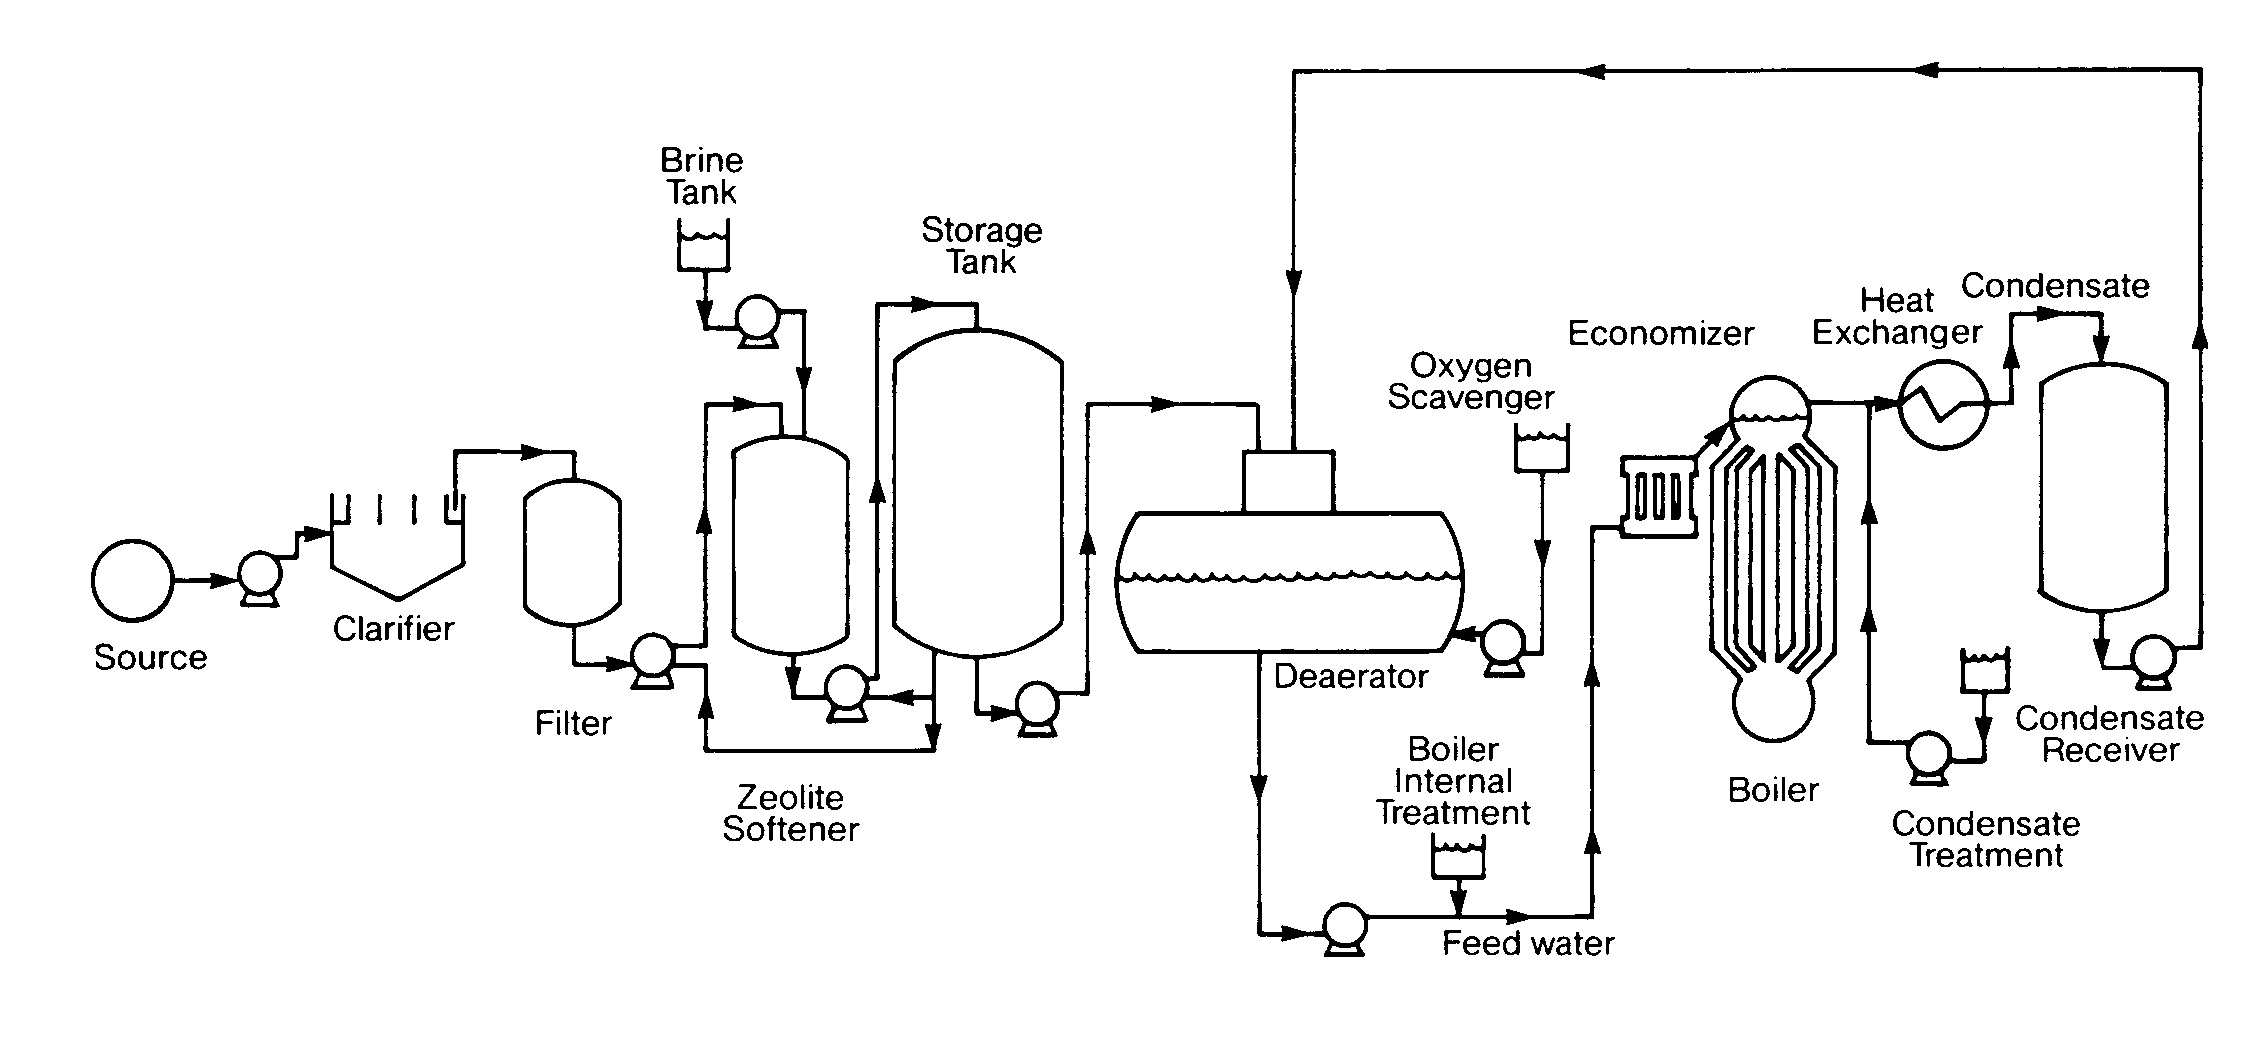 Block Diagram Boiler Wiring Library System Of Water Together With Schematic Plant Flow